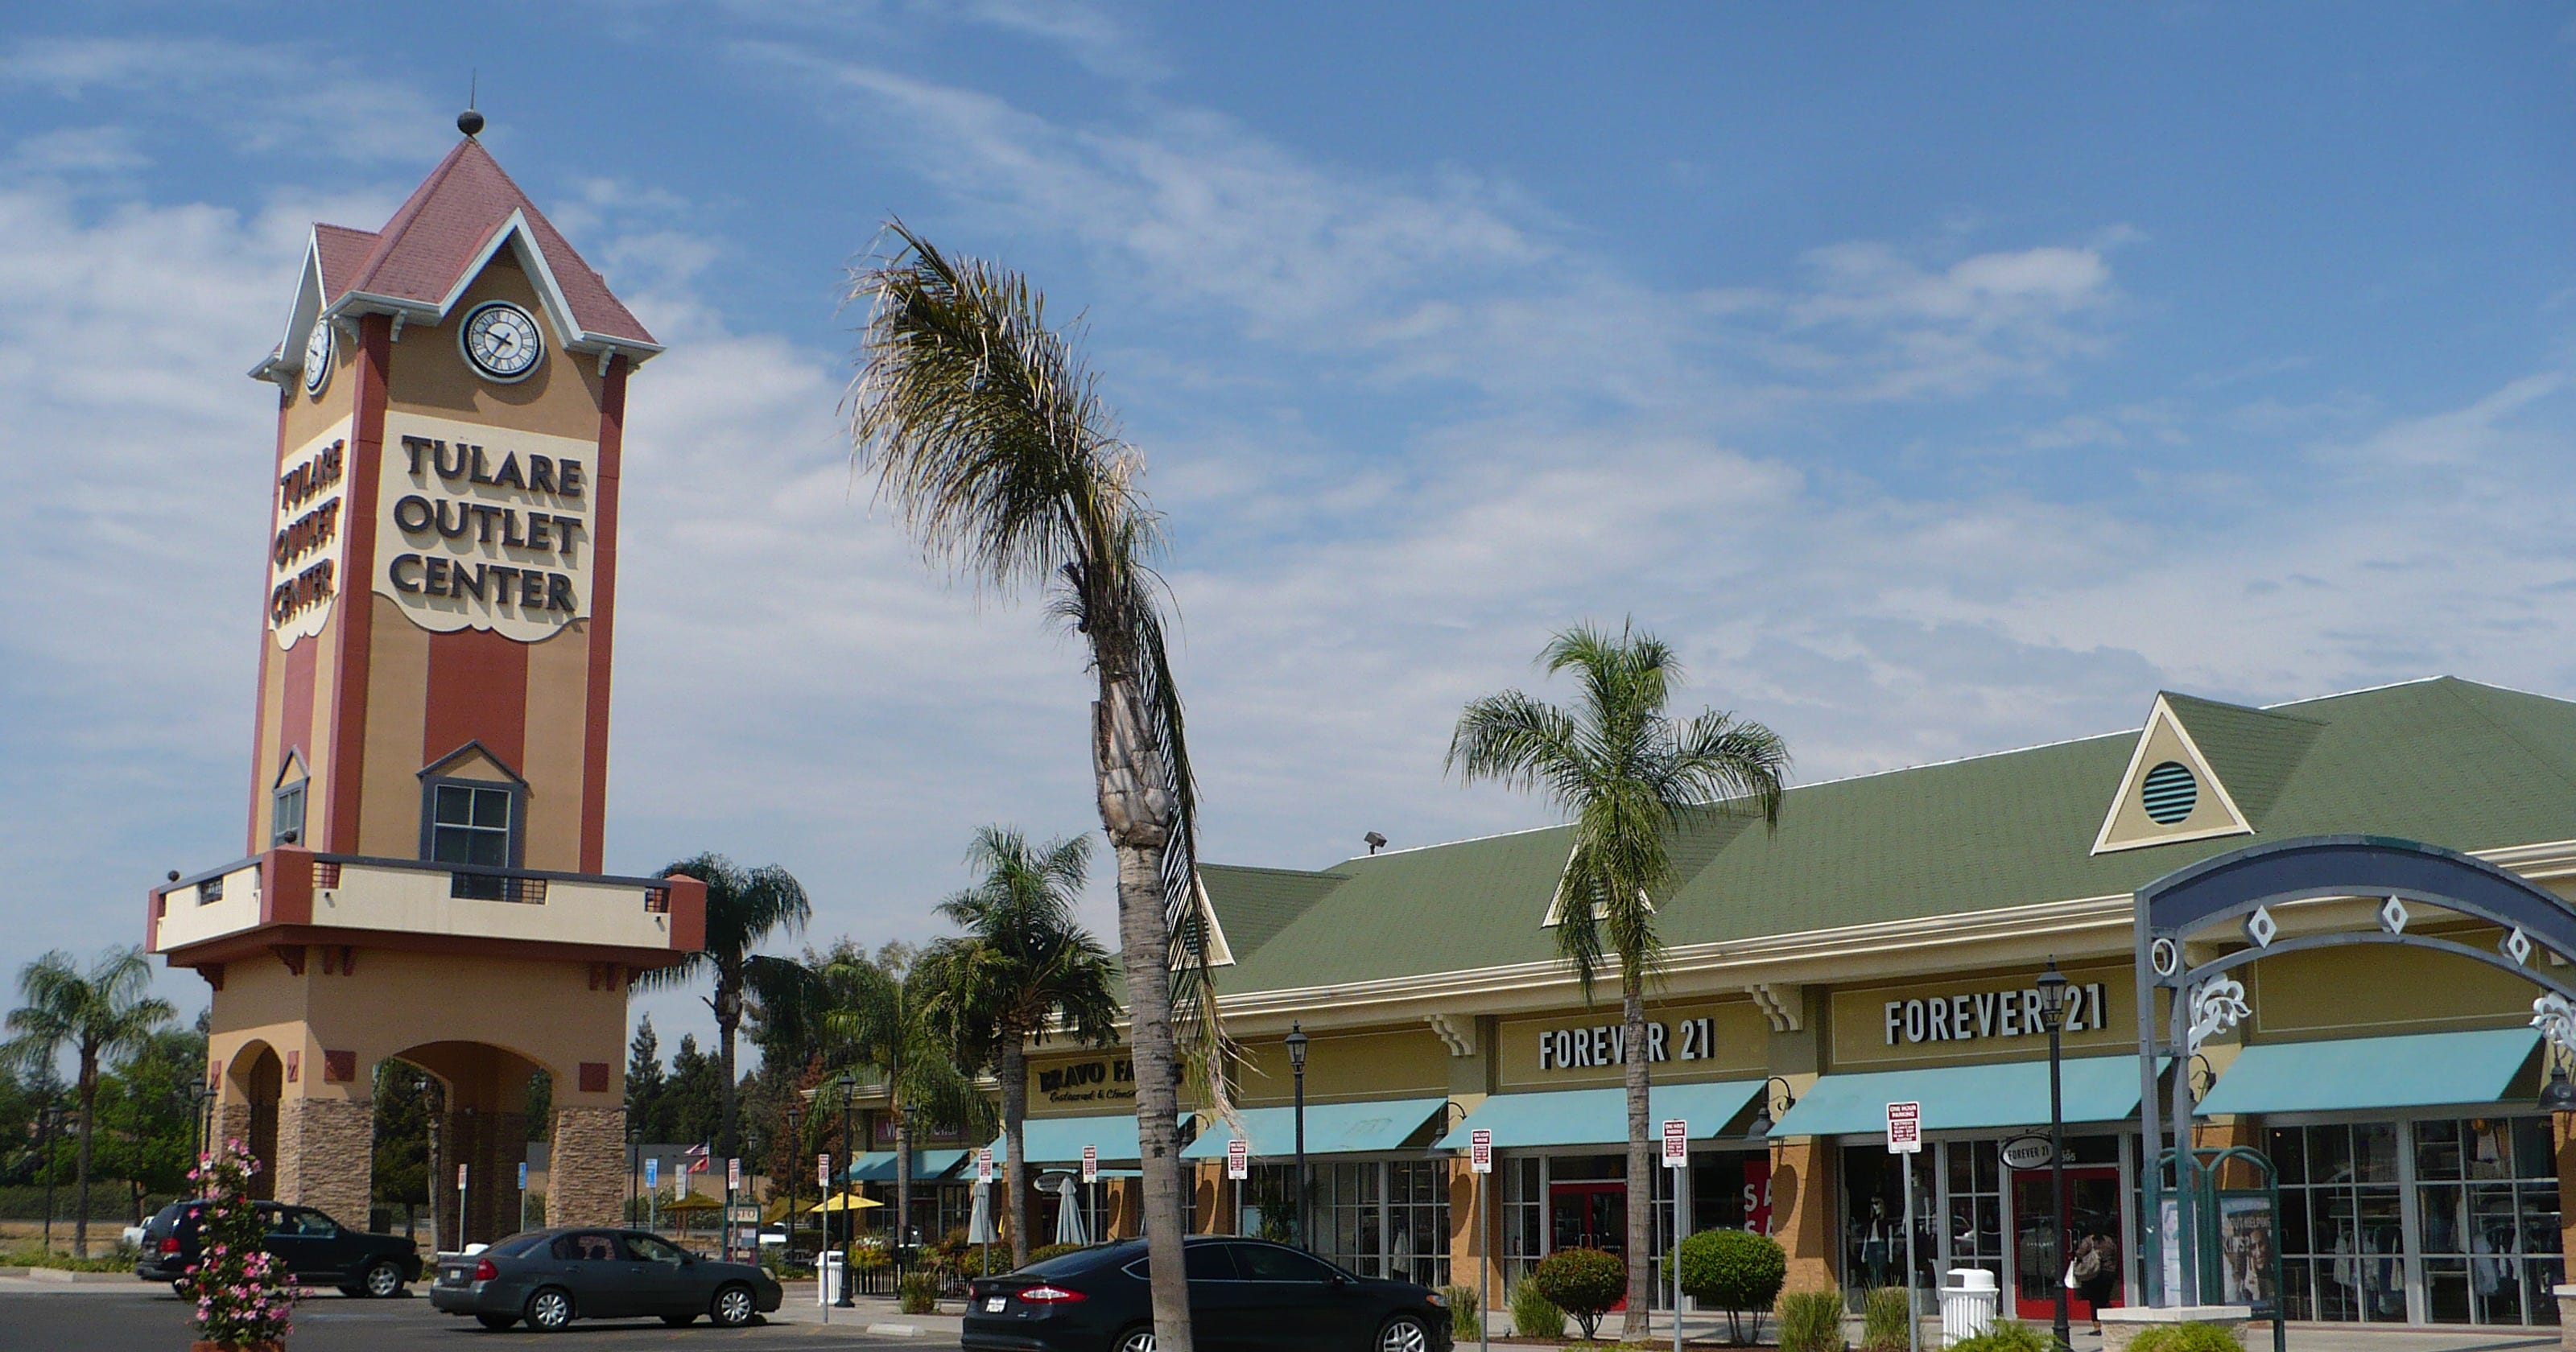 fbac2e3fd2ca9 Tulare Outlet Center seeks council s financial backing